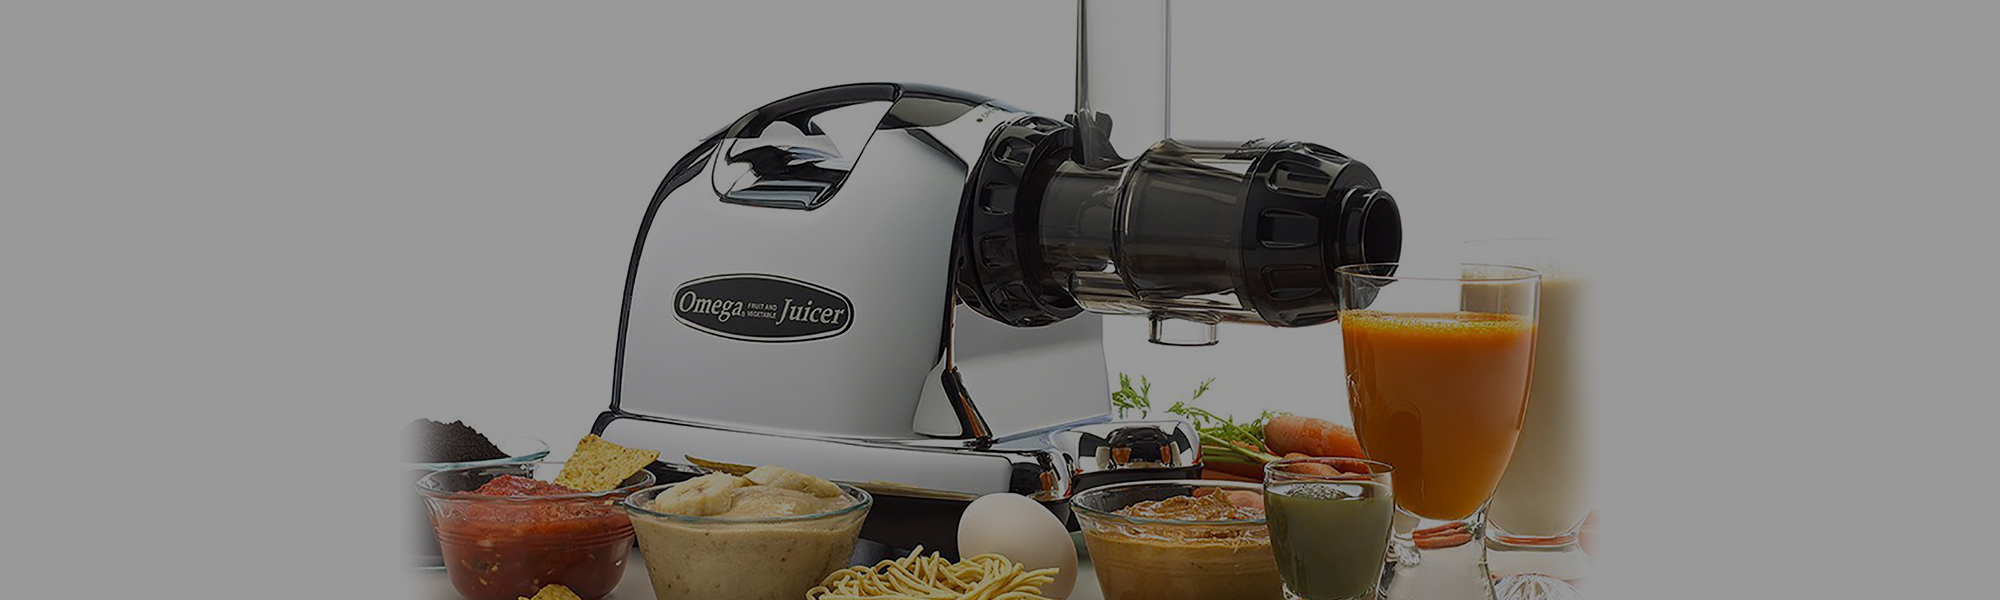 Omega VRT350 Heavy Duty<br>Dual-Stage Vertical Juicer